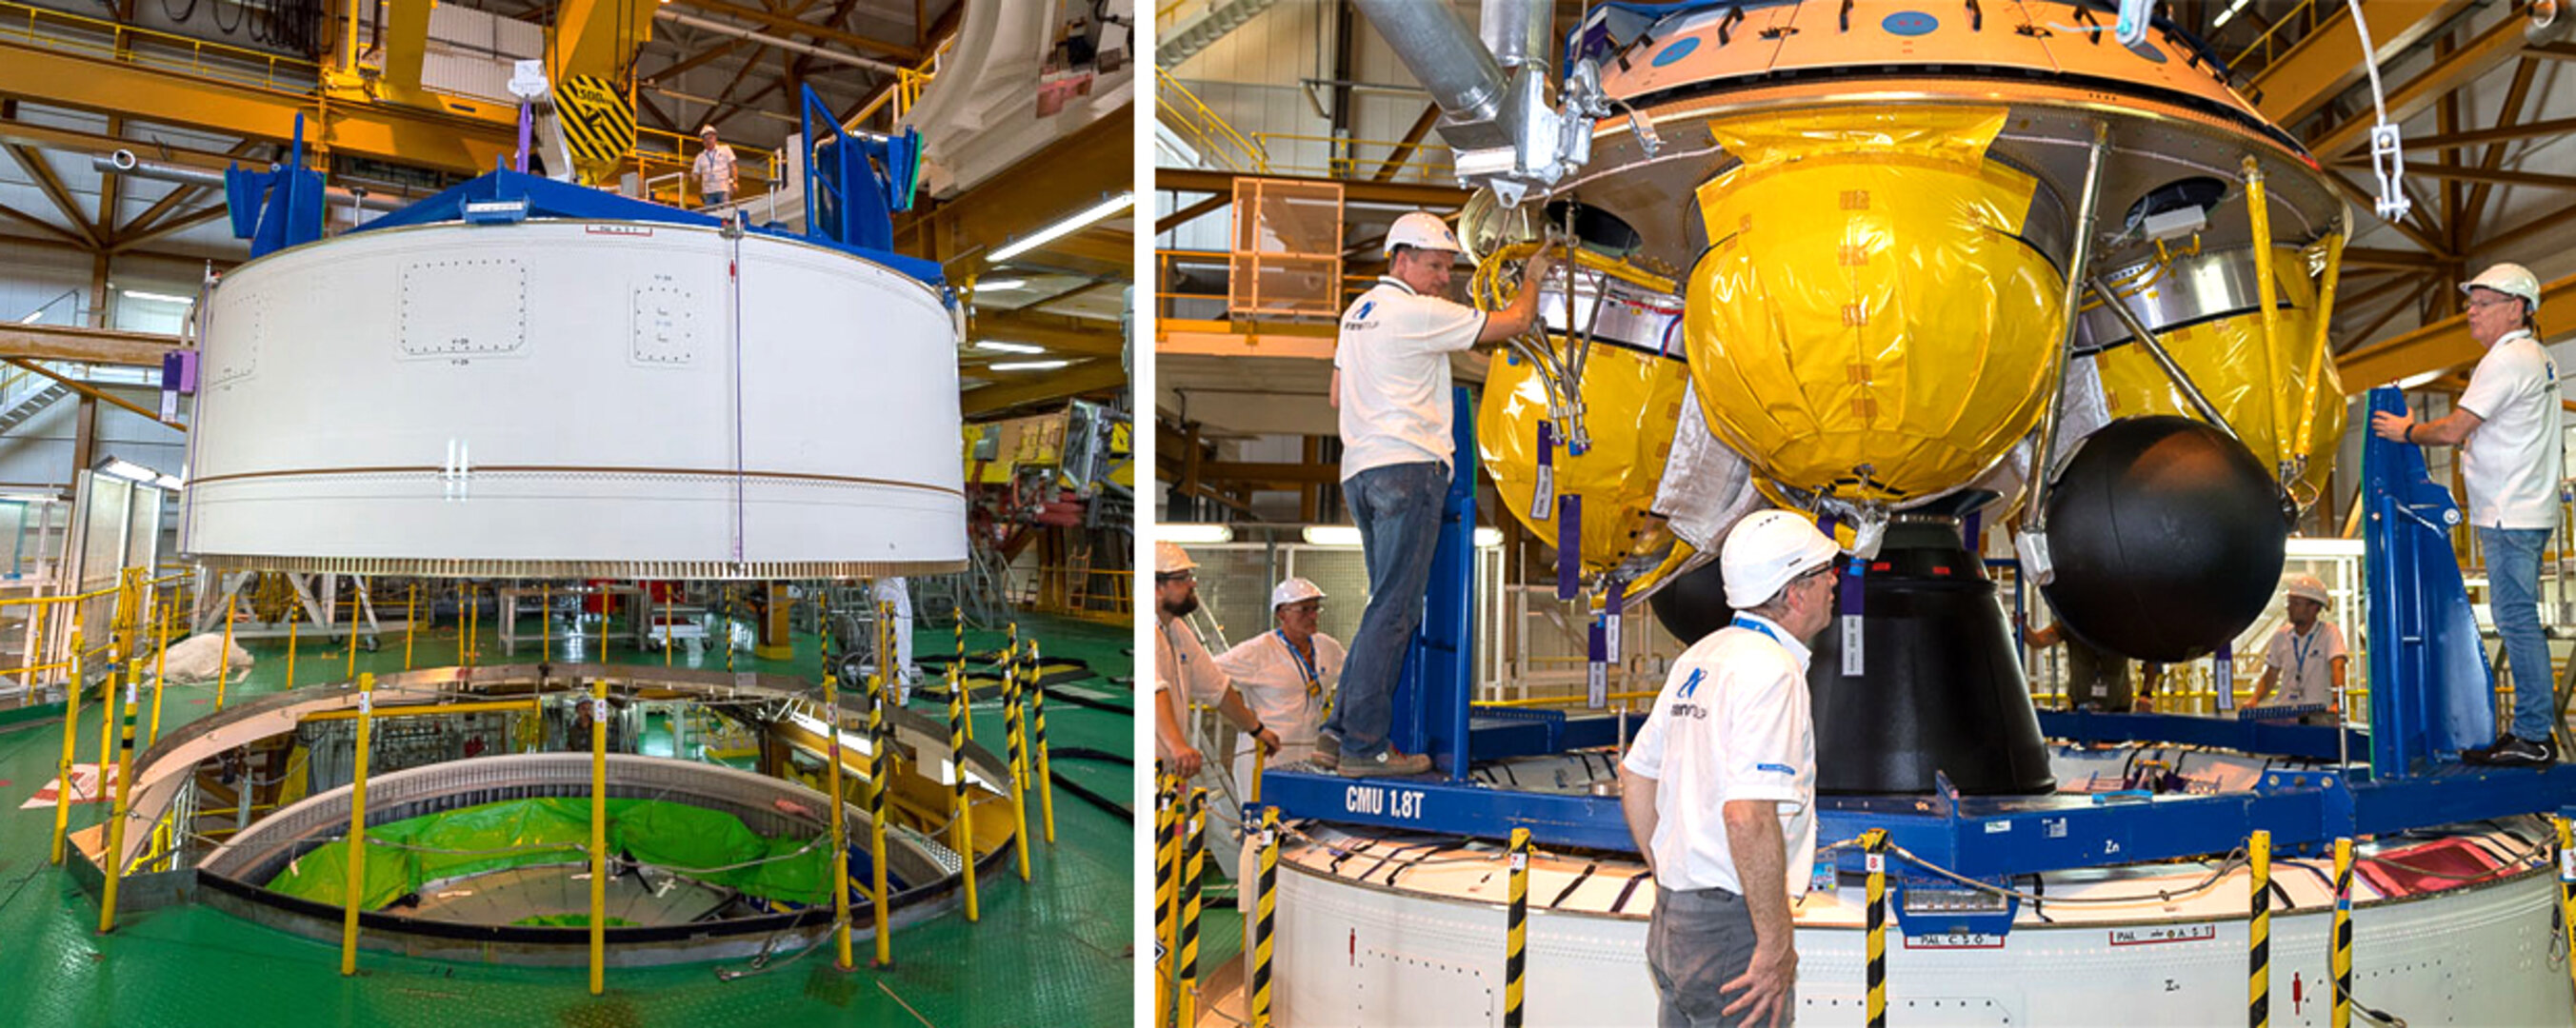 Fitting Ariane 5 together